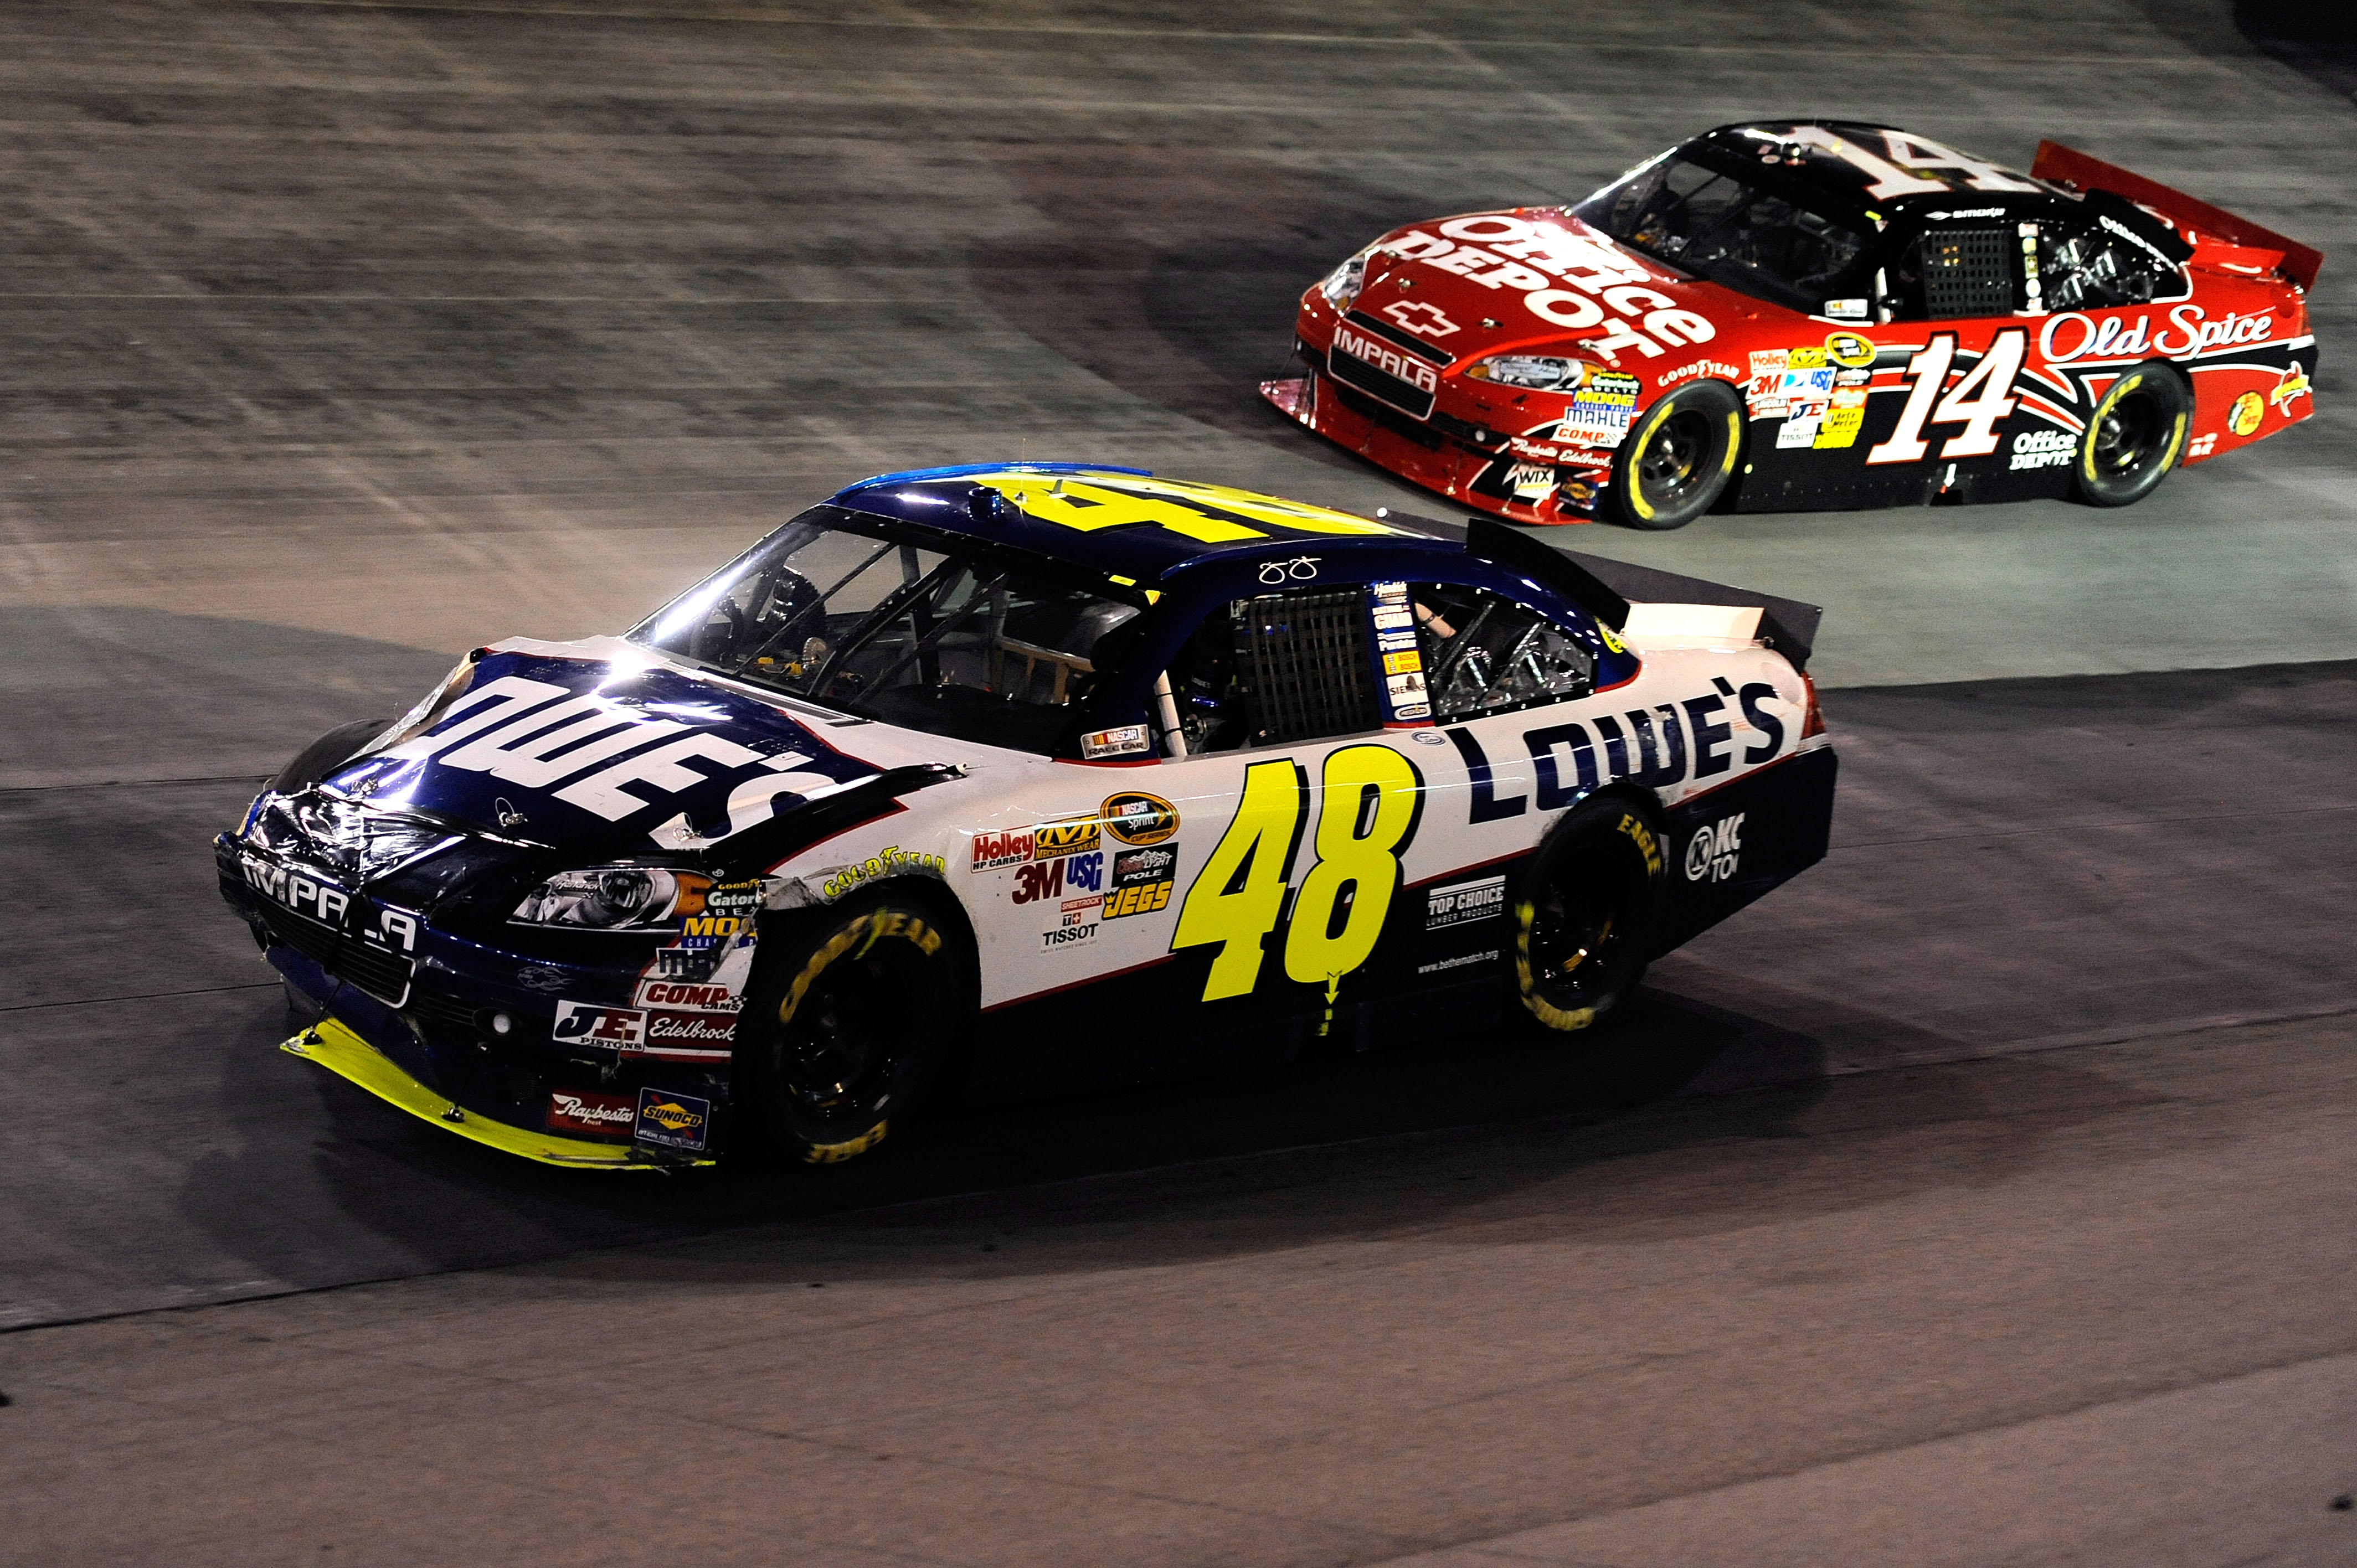 BRISTOL, TN - AUGUST 21:  Jimmie Johnson drives the #48 Lowe's Chevrolet down the aprin ahead of Tony Stewart, driver of the #14 Office Depot/Old Spice Chevrolet, after an incident on track in the NASCAR Sprint Cup Series IRWIN Tools Night Race at Bristol